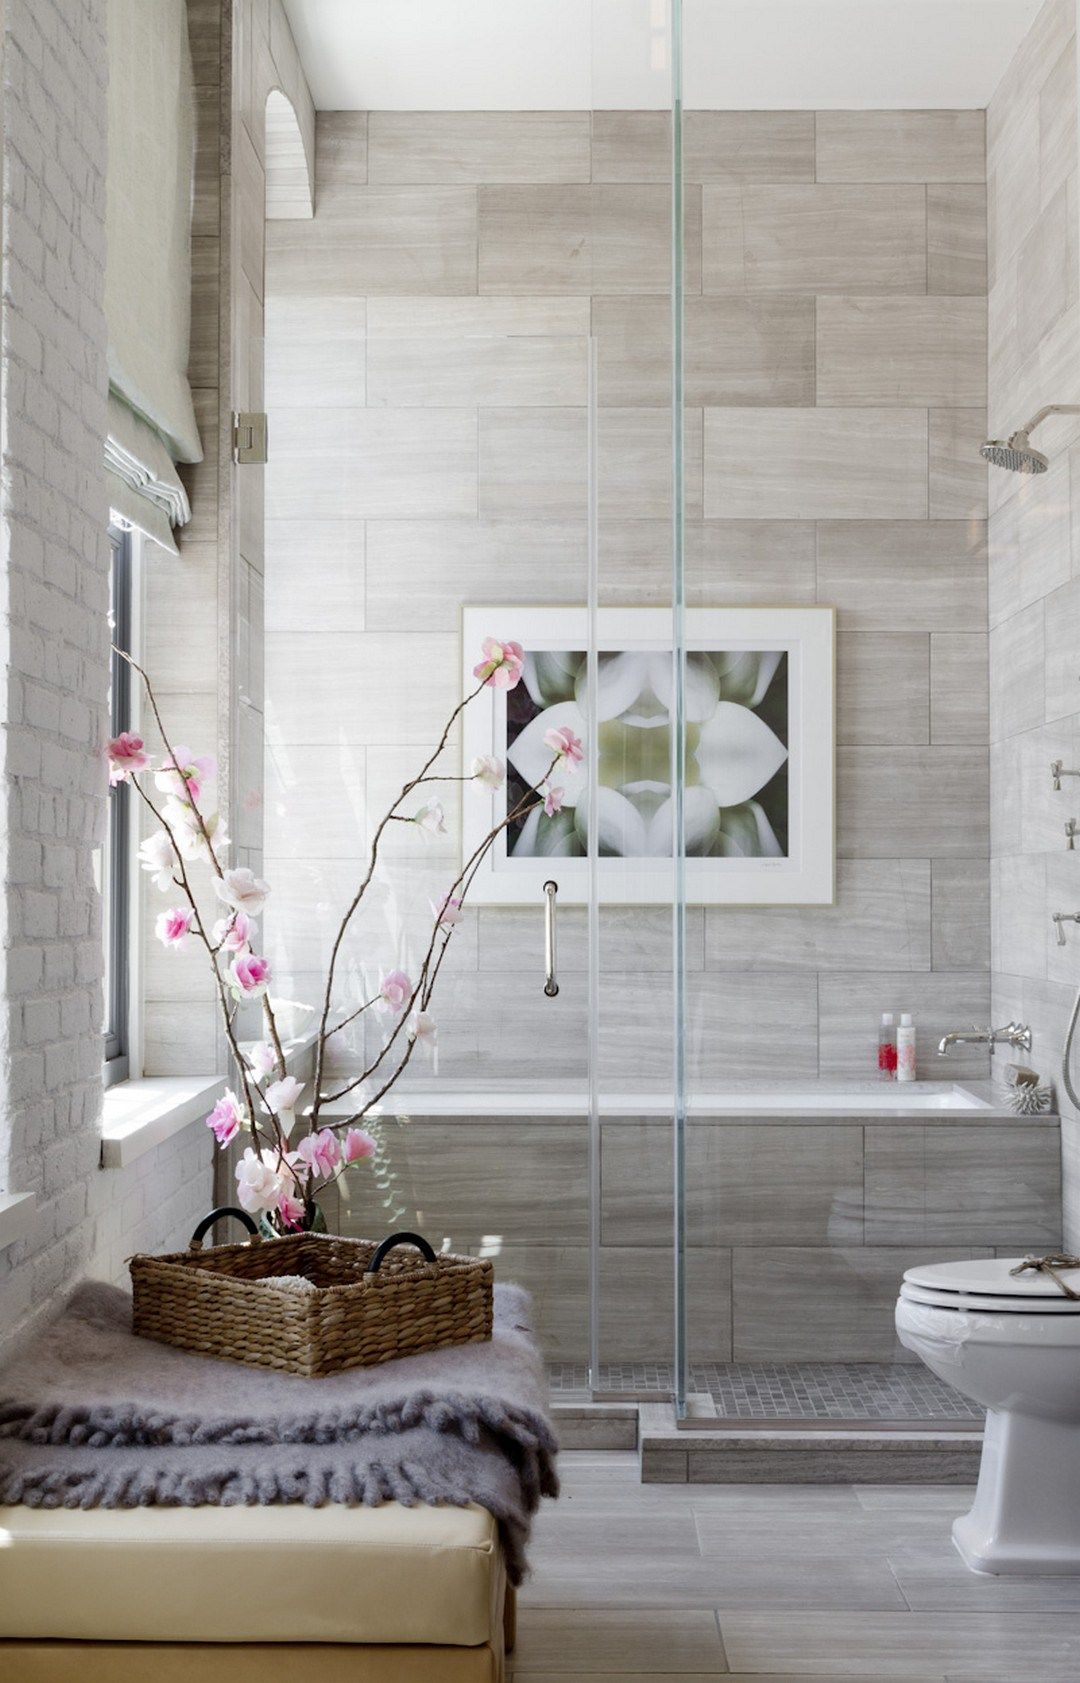 99 Small Bathroom Tub Shower Combo Remodeling Ideas 14 Alluring Small Bathroom With Tub And Shower Decorating Design